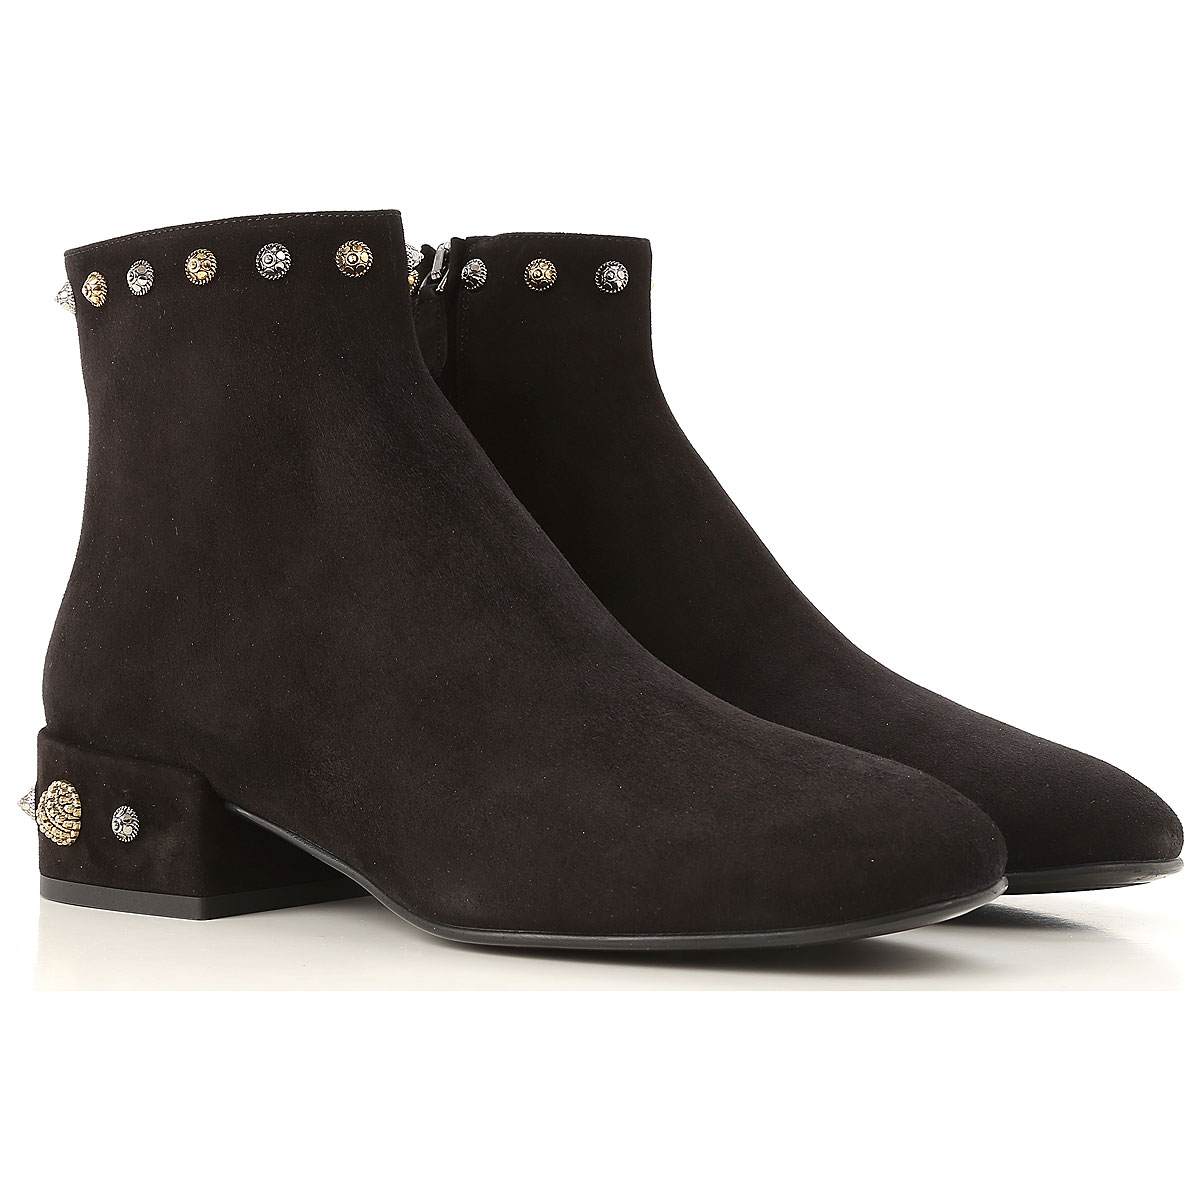 Image of 181 Boots for Women, Booties, Black, Suede leather, 2017, 10 6 7 8 8.5 9 9